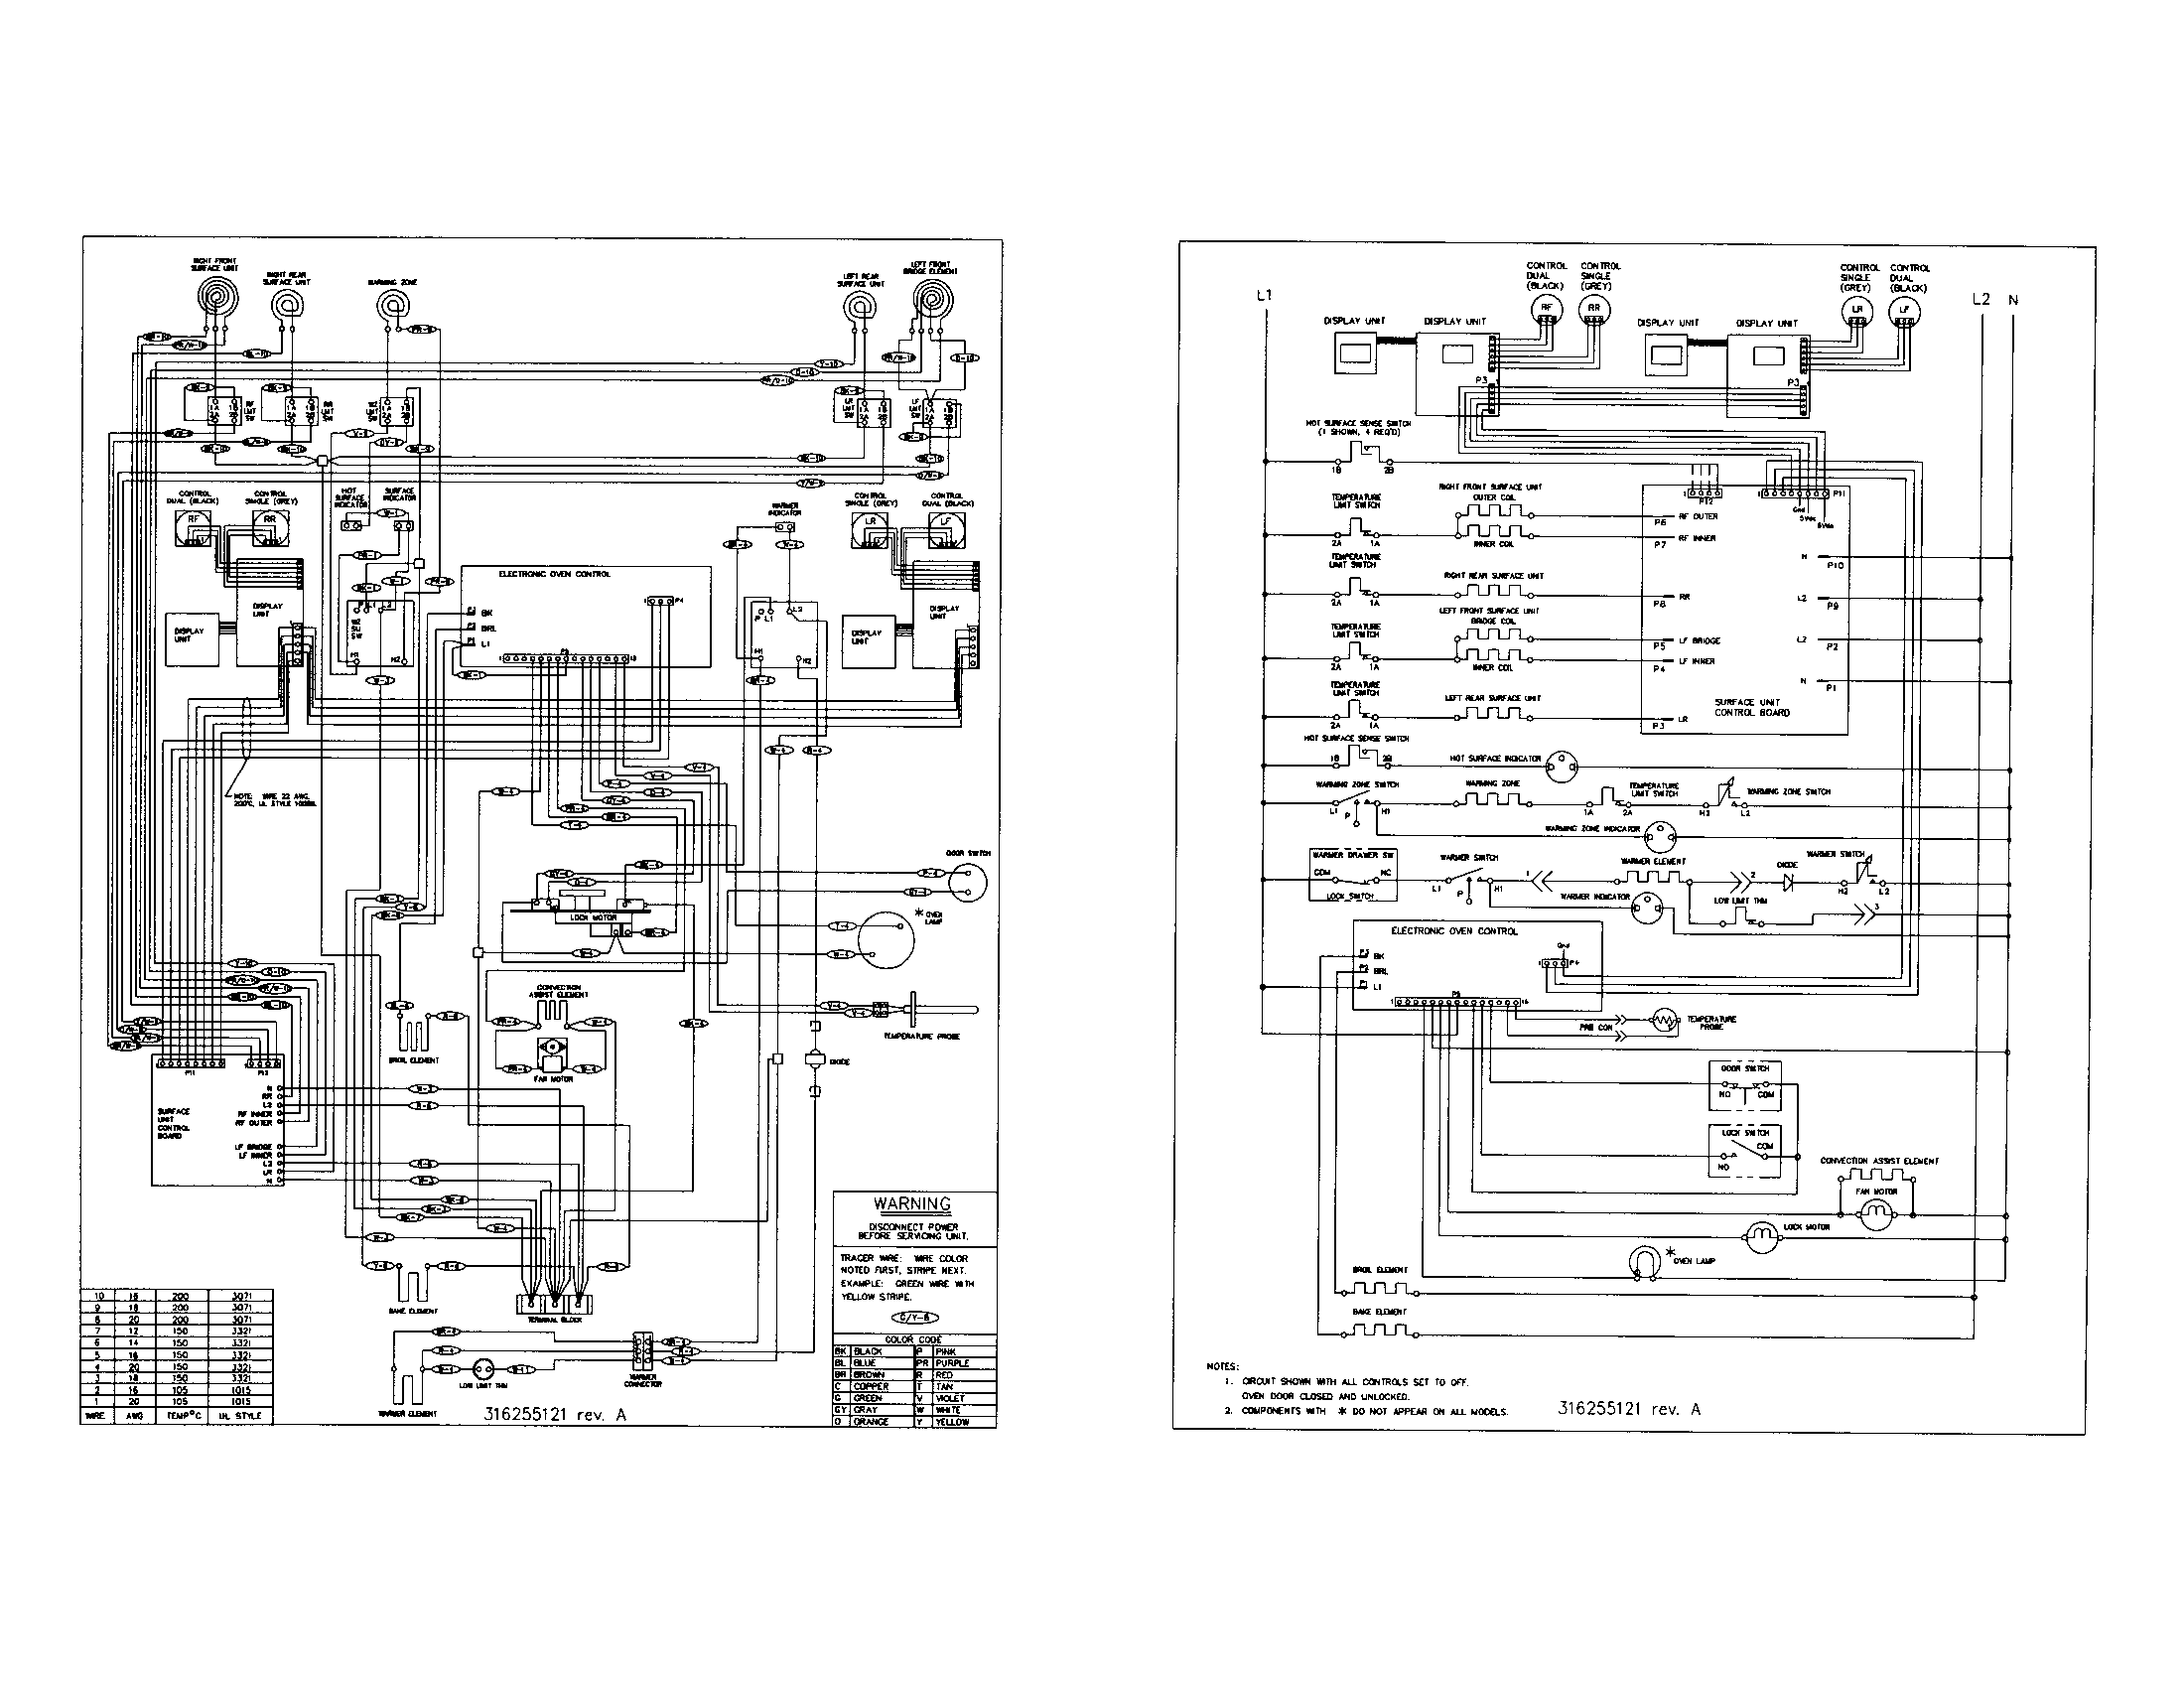 electric dryer wiring diagram badlands 5000 winch ge door switch free engine image